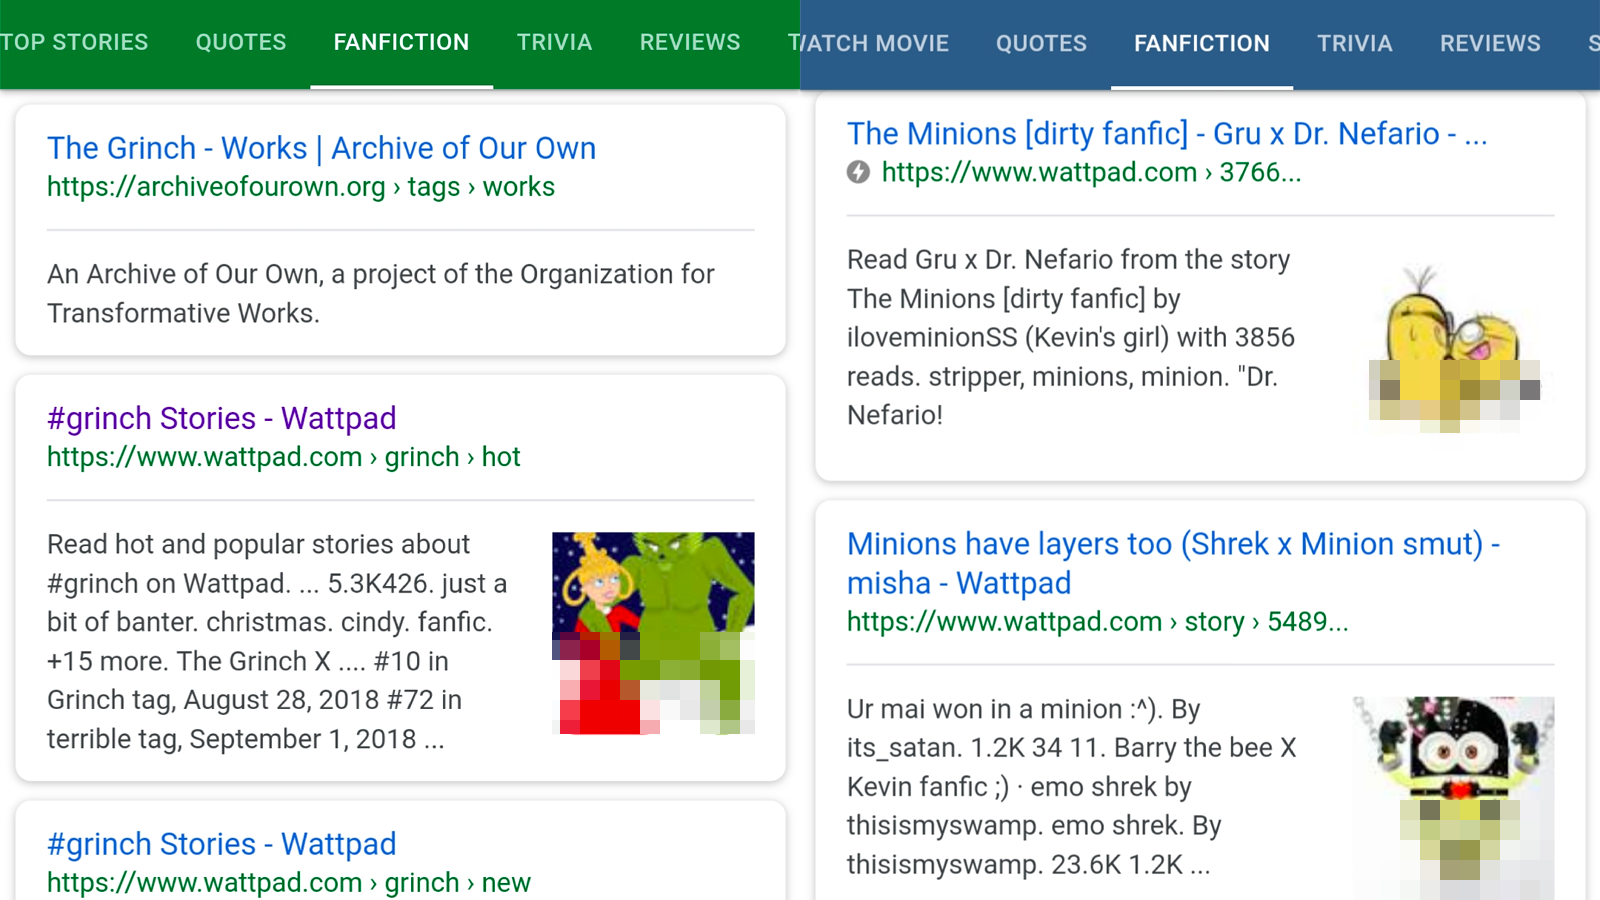 Google Axes 'Fanfiction' Tab That Suggested Grinch And Minions Porn